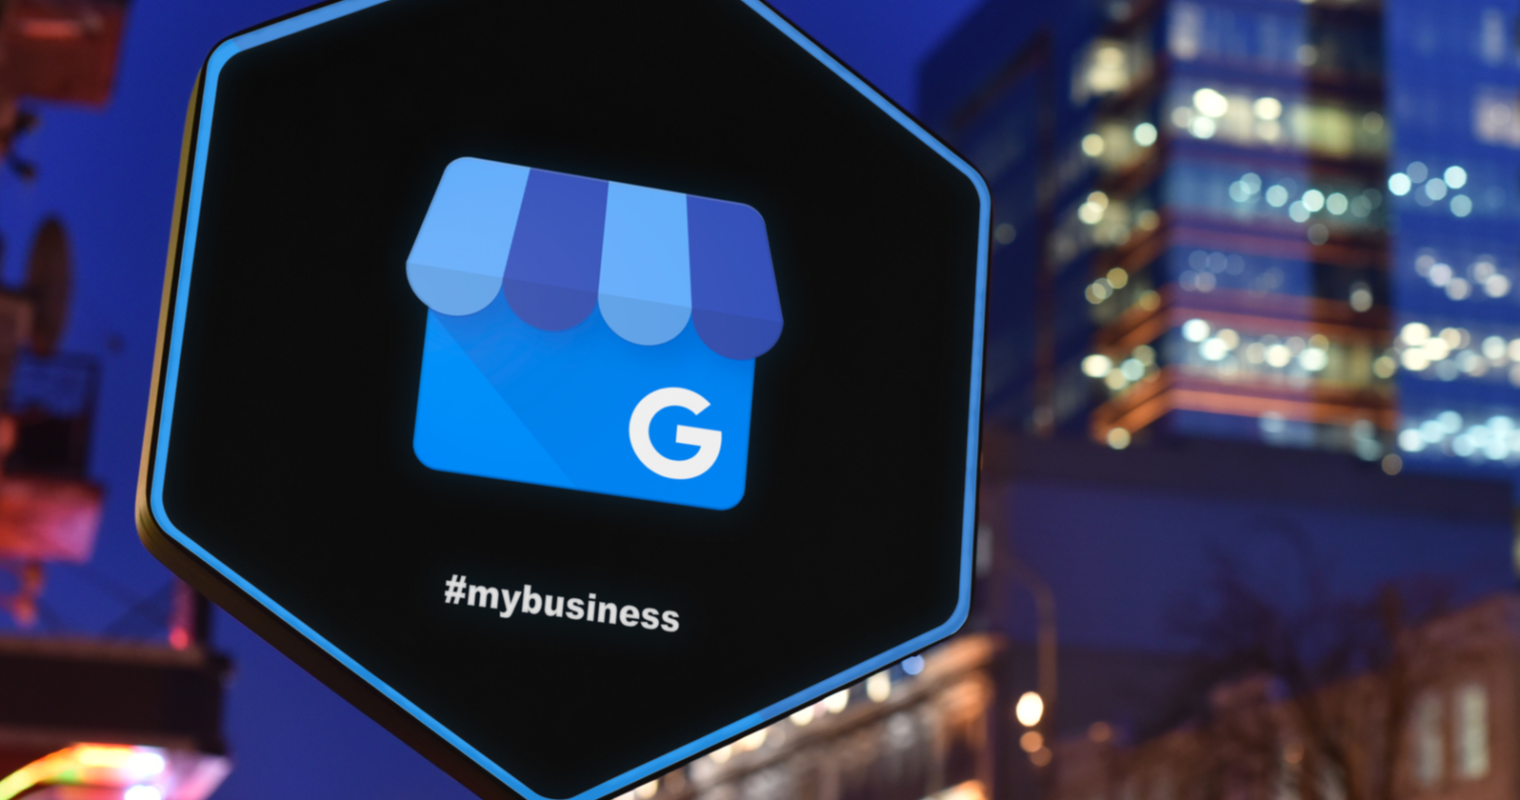 5% of Google My Business Listing Views Result in a Customer Action